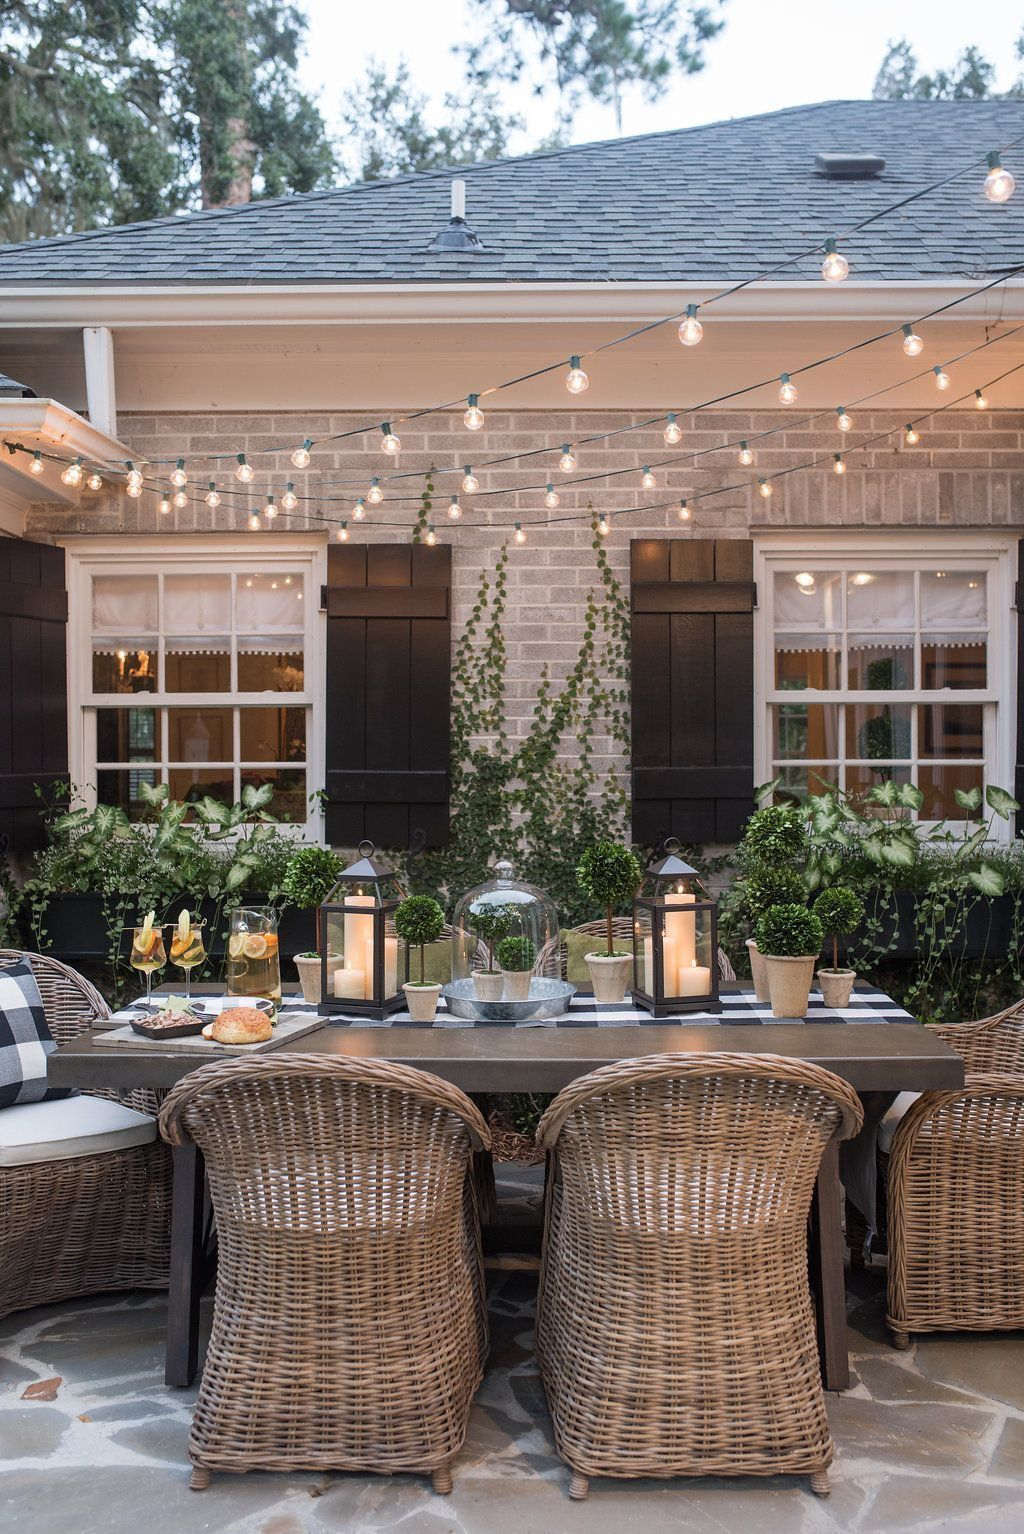 Backyard Oasis Inspiration | Decoración colonial, Corredores y Navidad